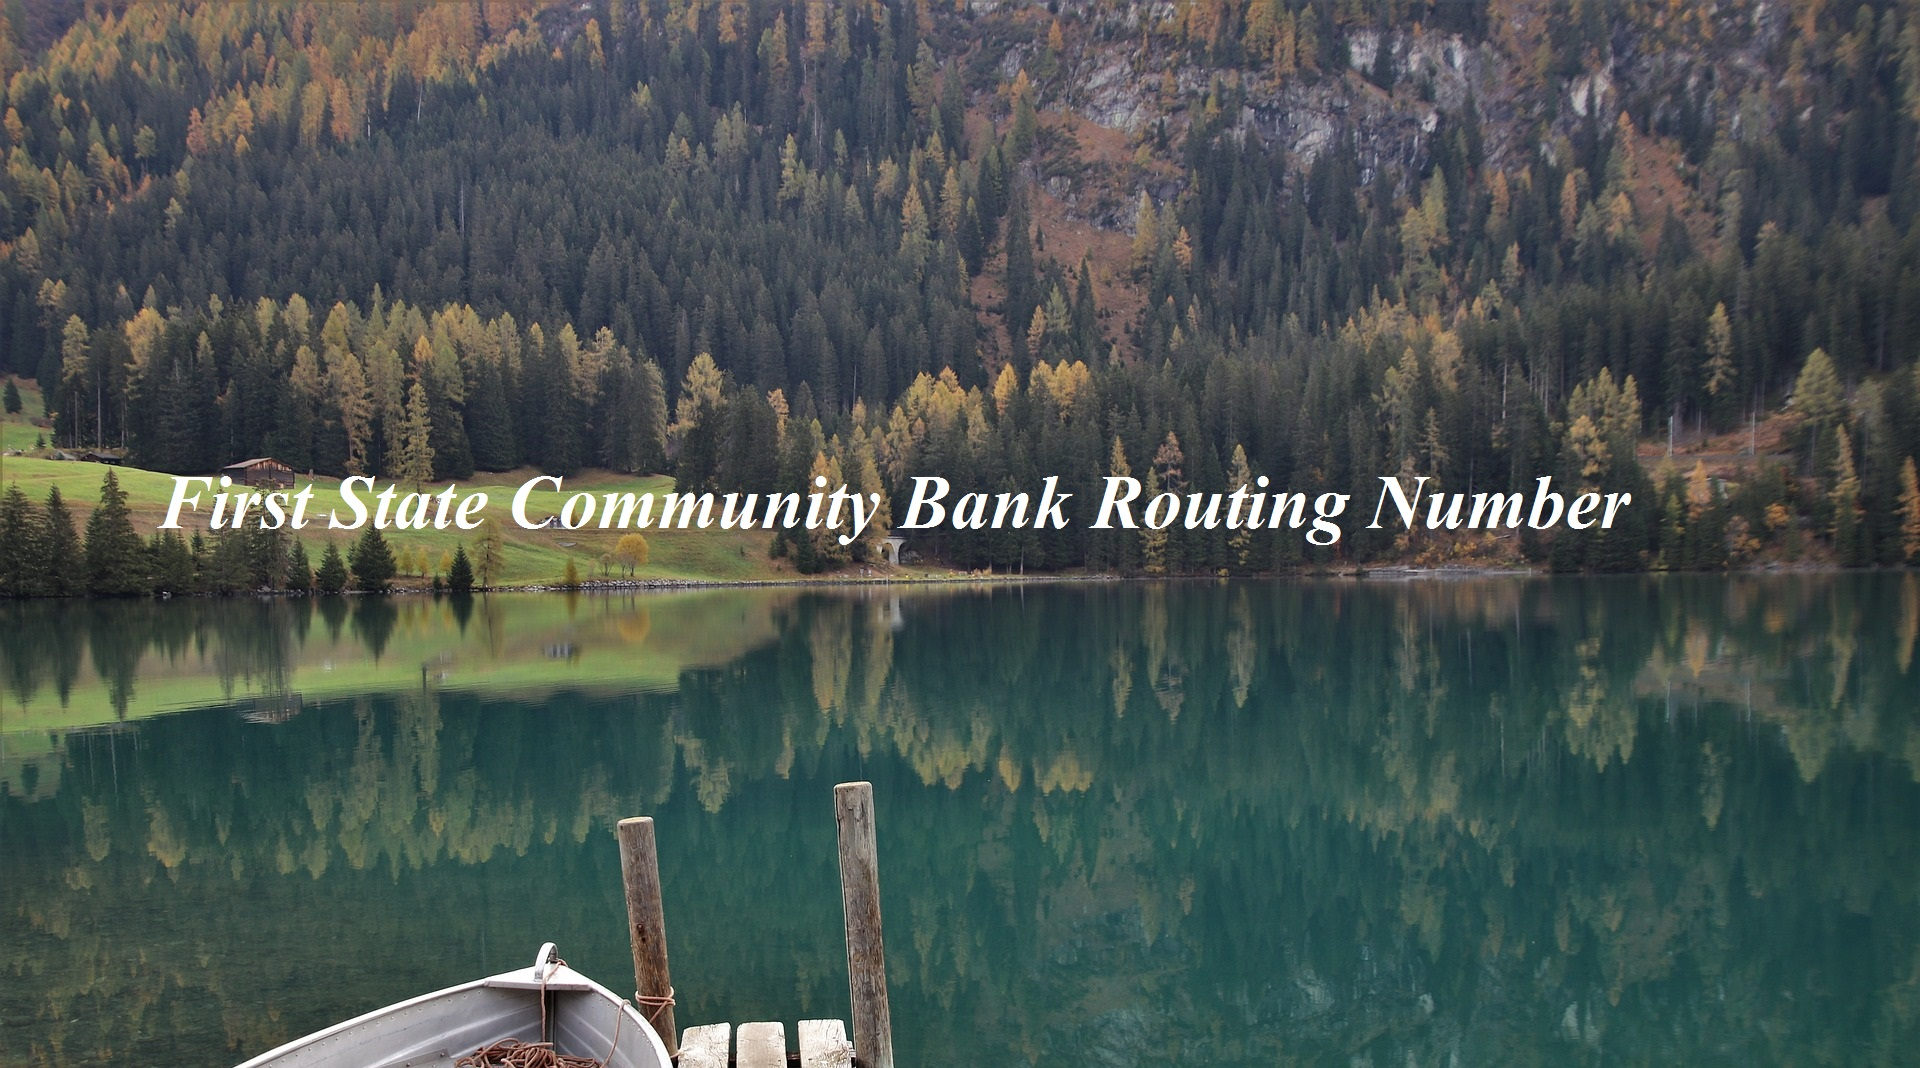 First State Community Bank Routing Number